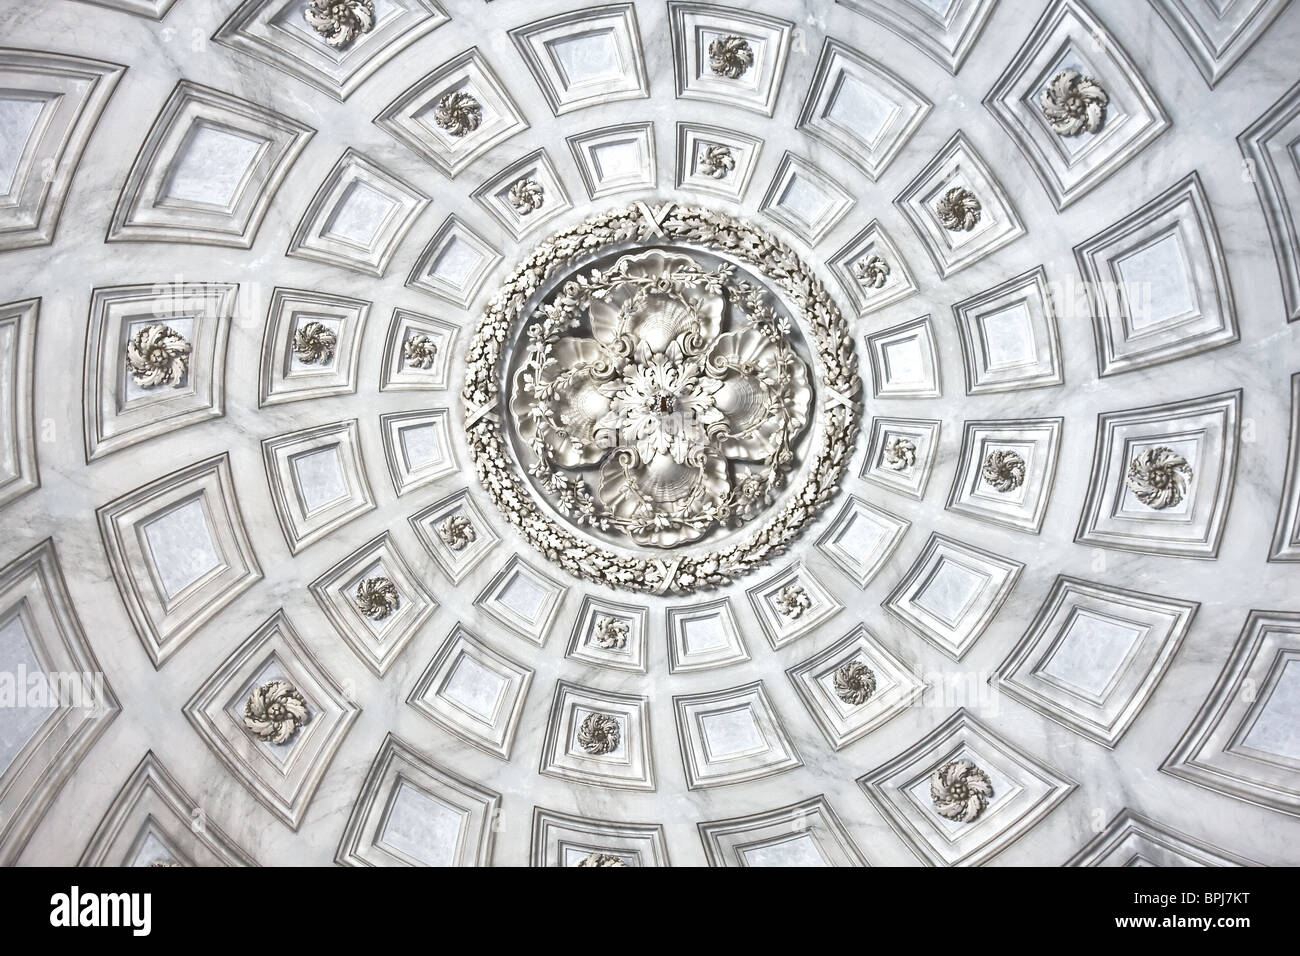 Details of the ceiling at The Royal Palace at Caserta, Italy Stock Photo